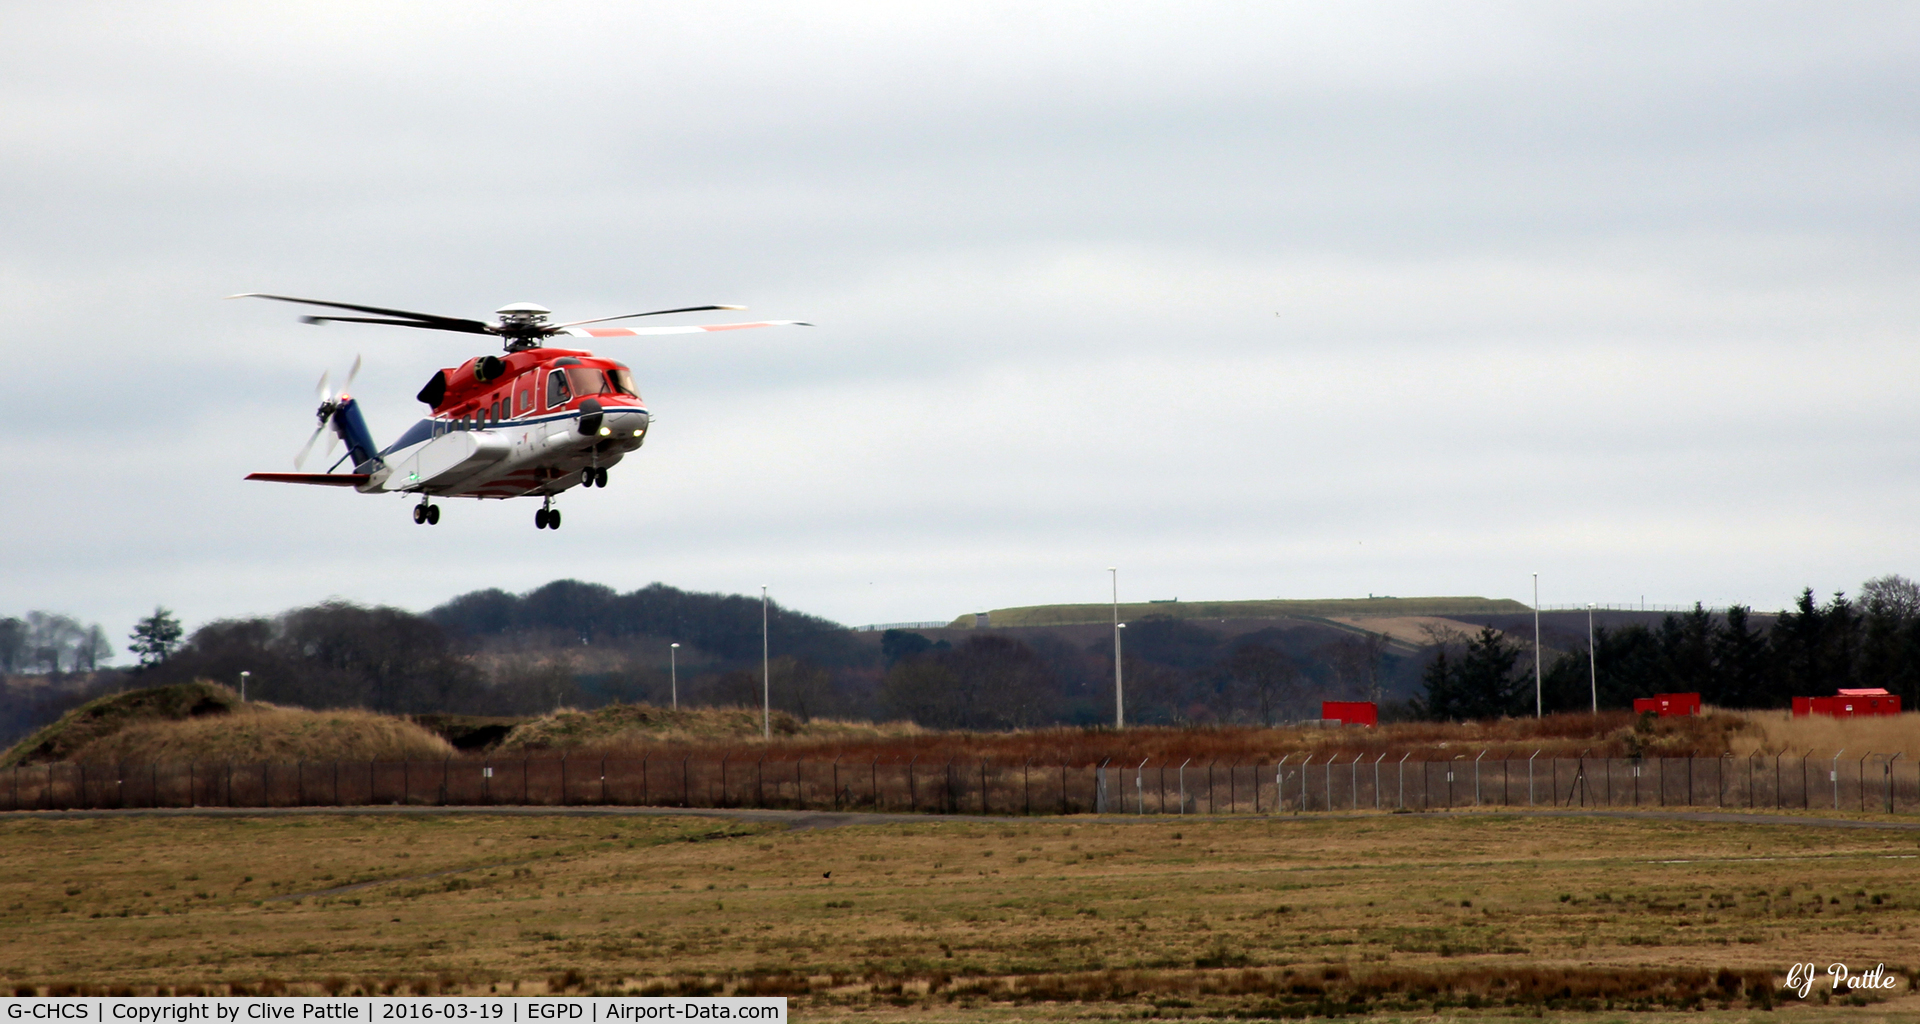 G-CHCS, 2010 Sikorsky S-92A C/N 920125, Long approach to land at Aberdeen EGPD